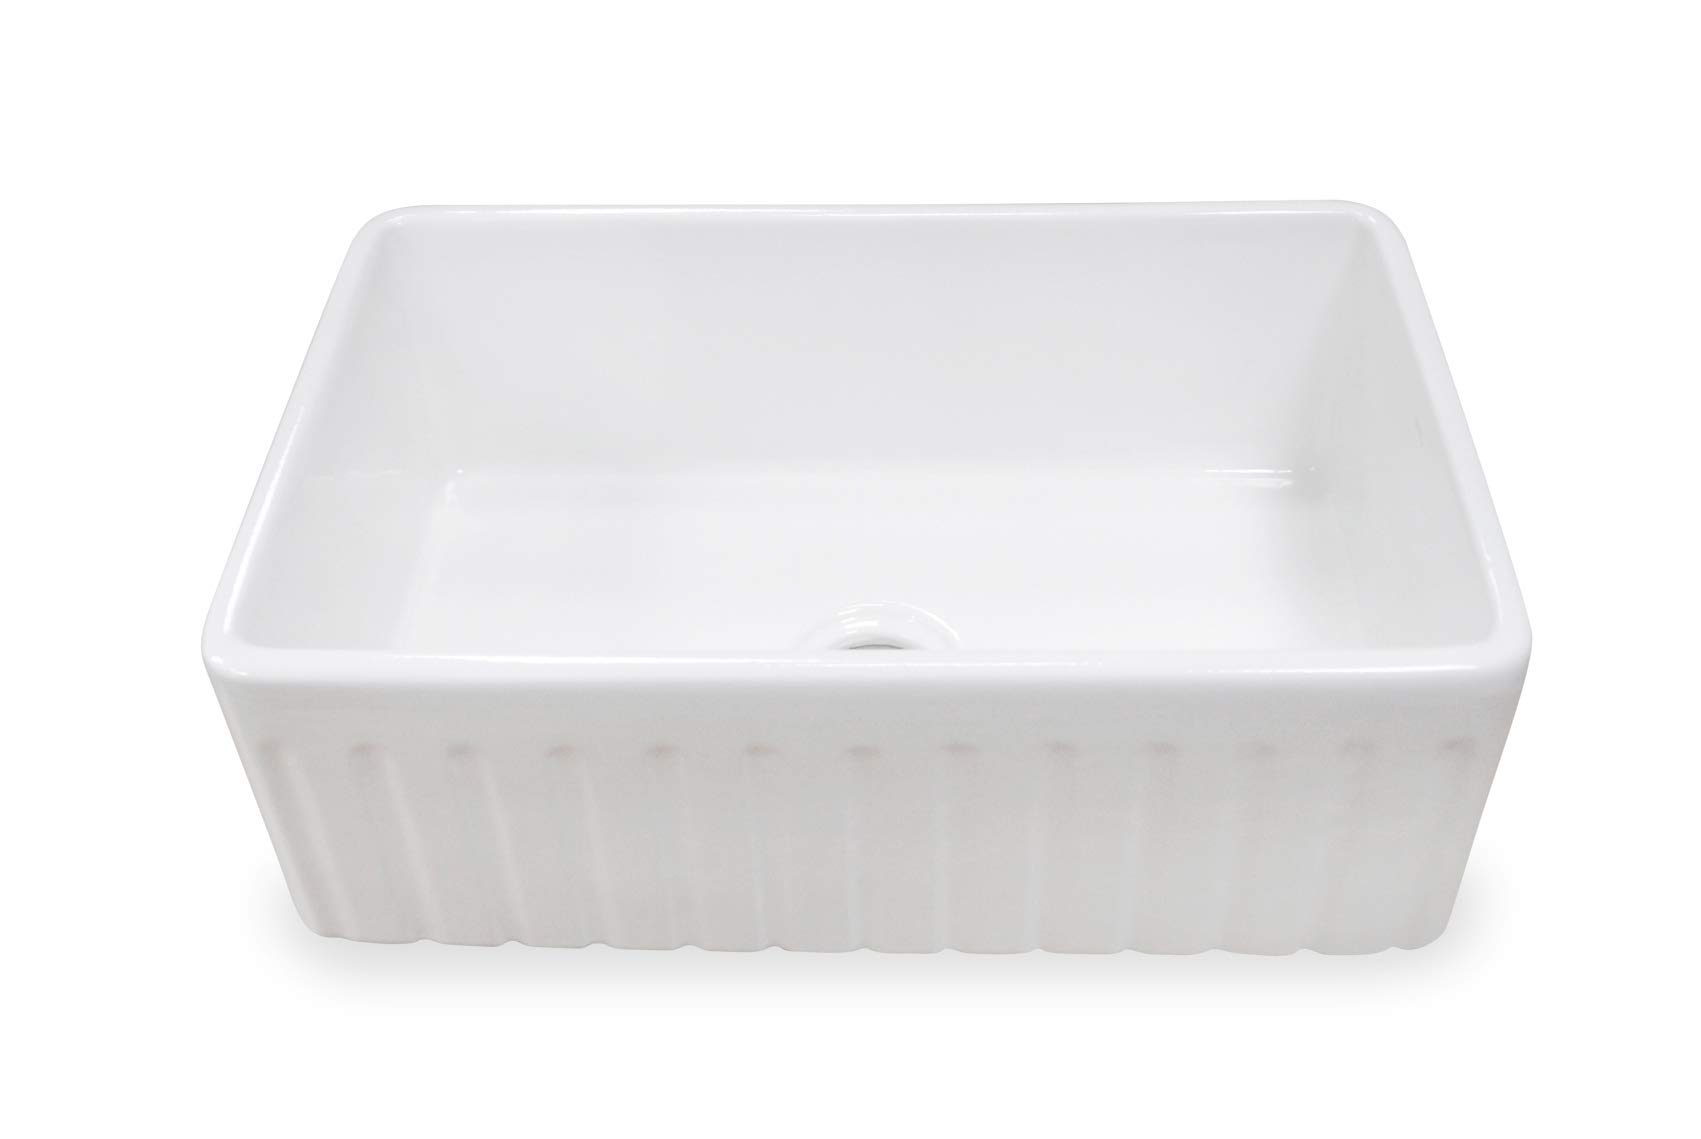 TRUE FIRECLAY Stria Reversible 30'' Apron Front Sink by MOCCOA, Farmhouse Kitchen Sink White … by MOCCOA (Image #3)